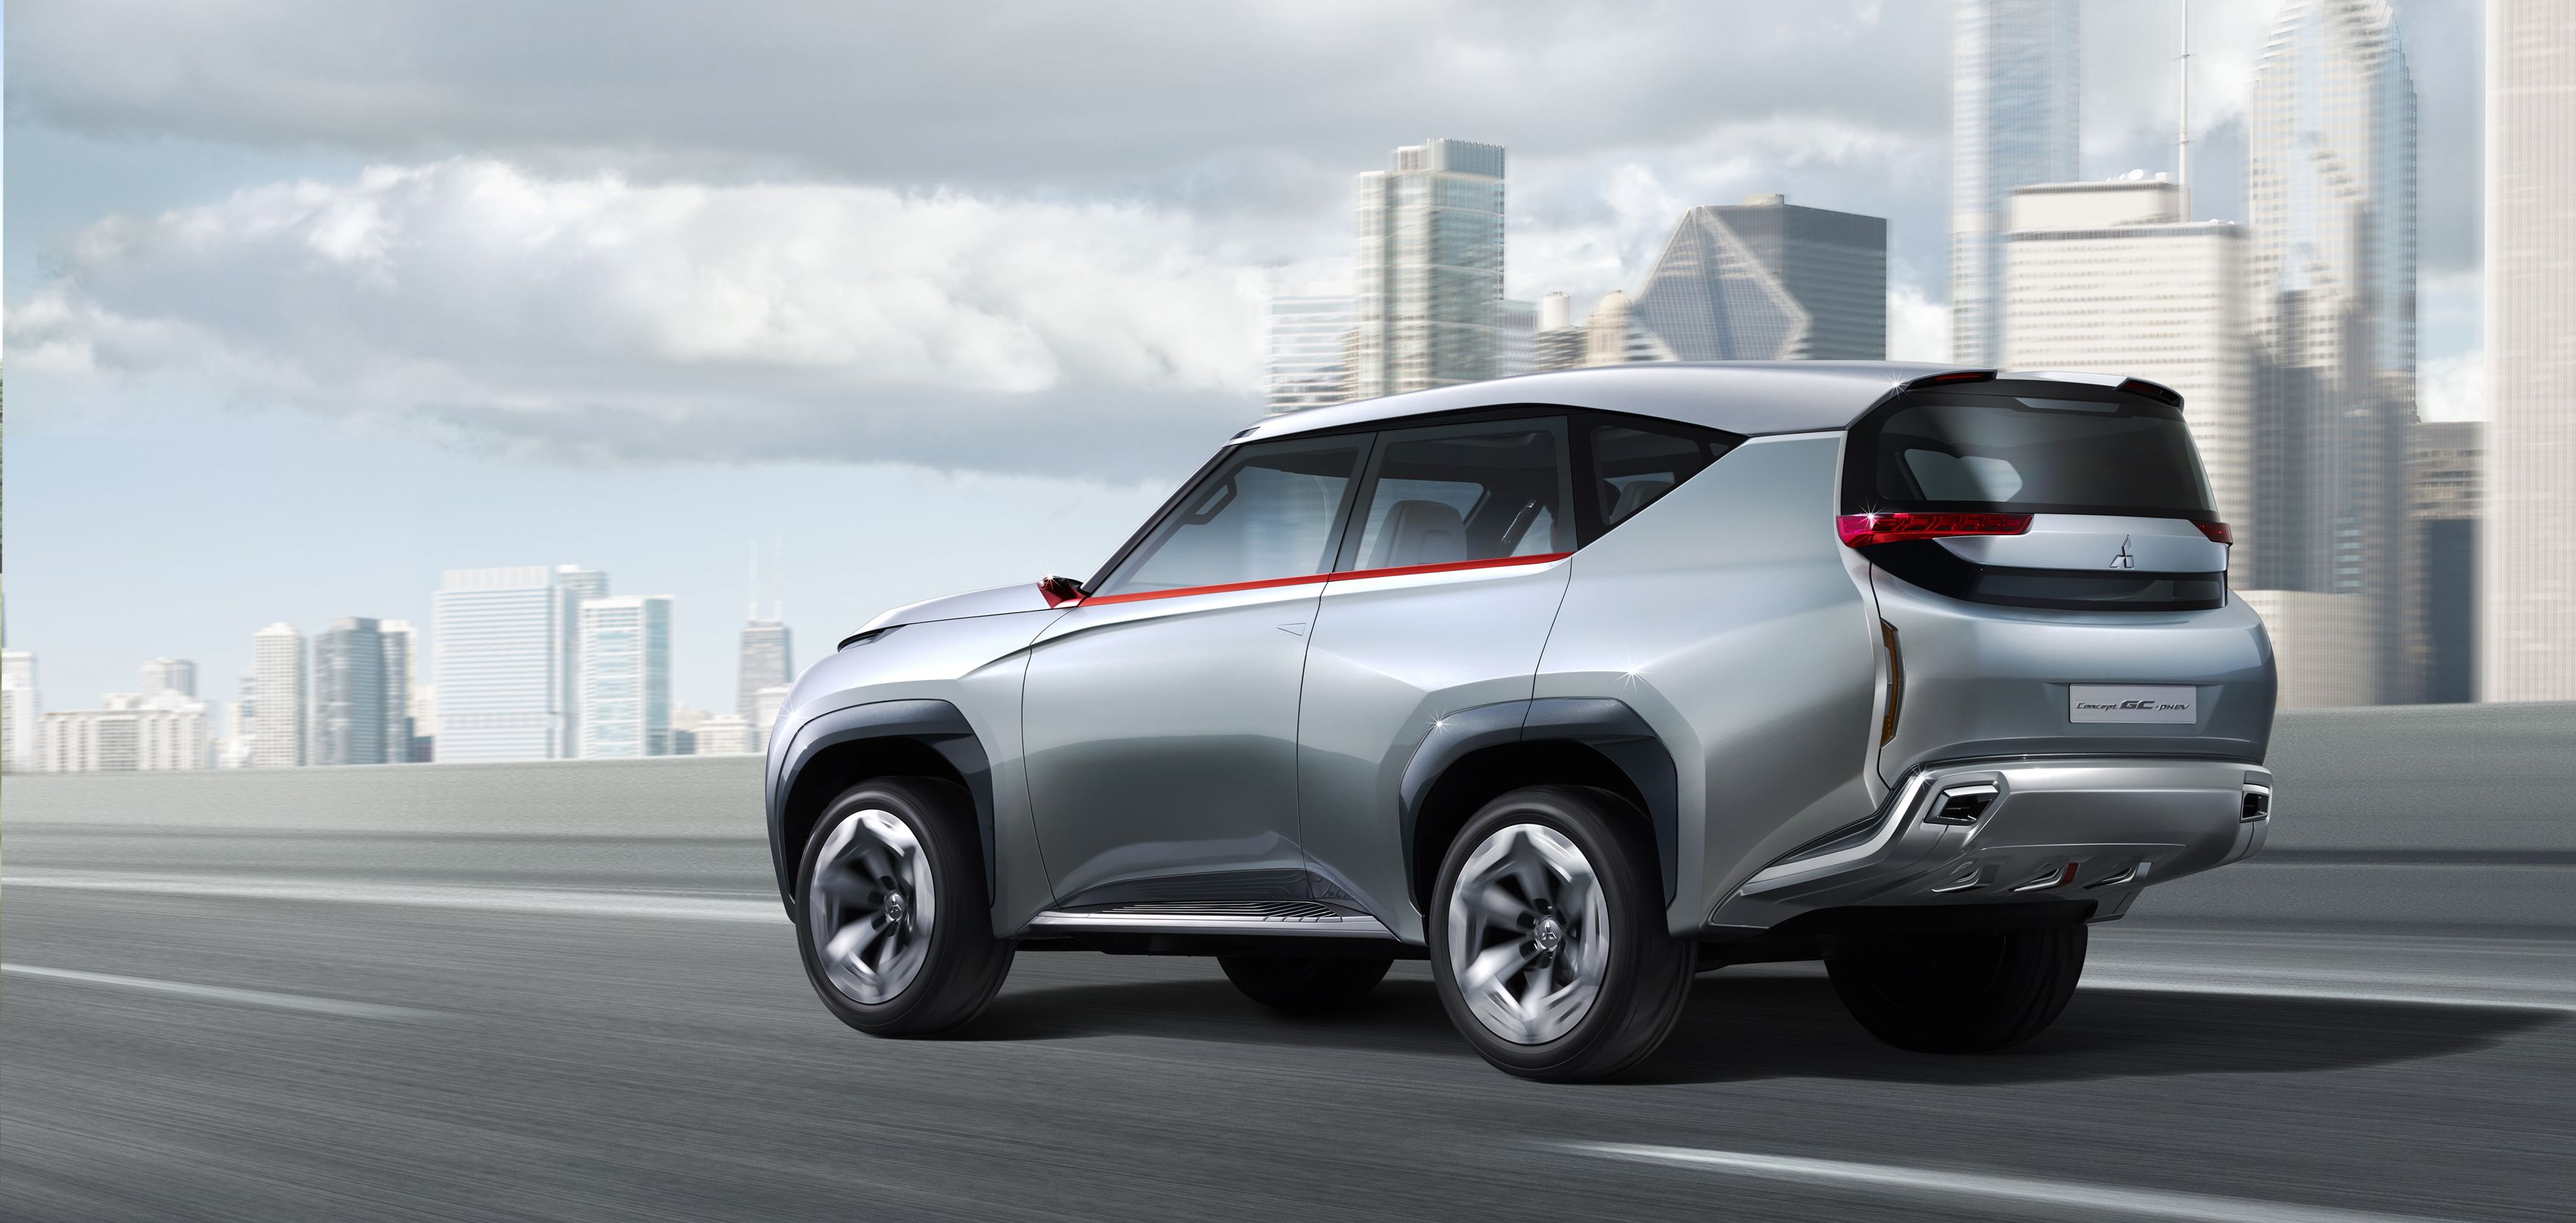 The mitsubishi concept gc phev is a next generation full size suv with